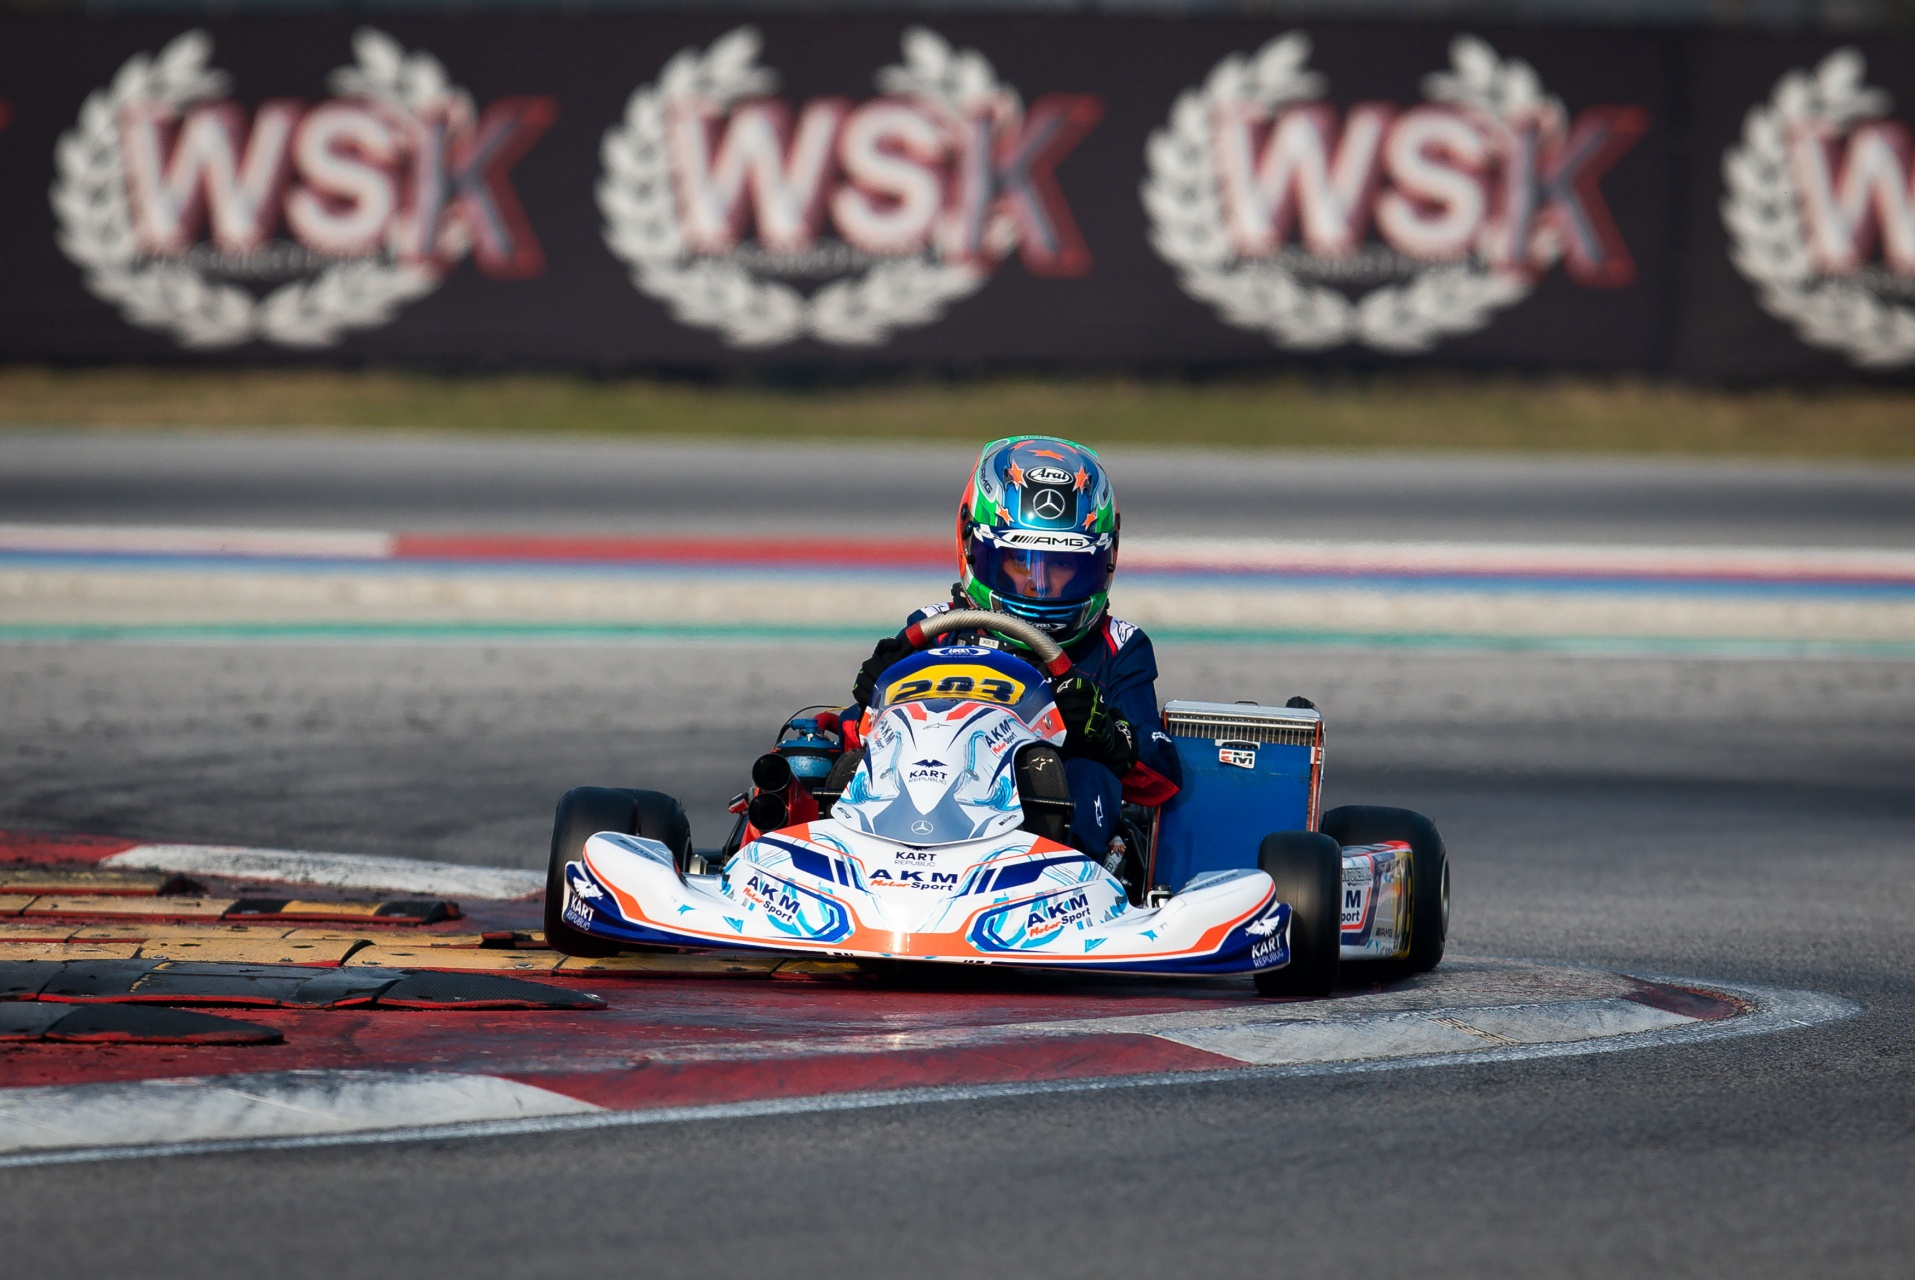 WSK Champions Cup - Qualifying